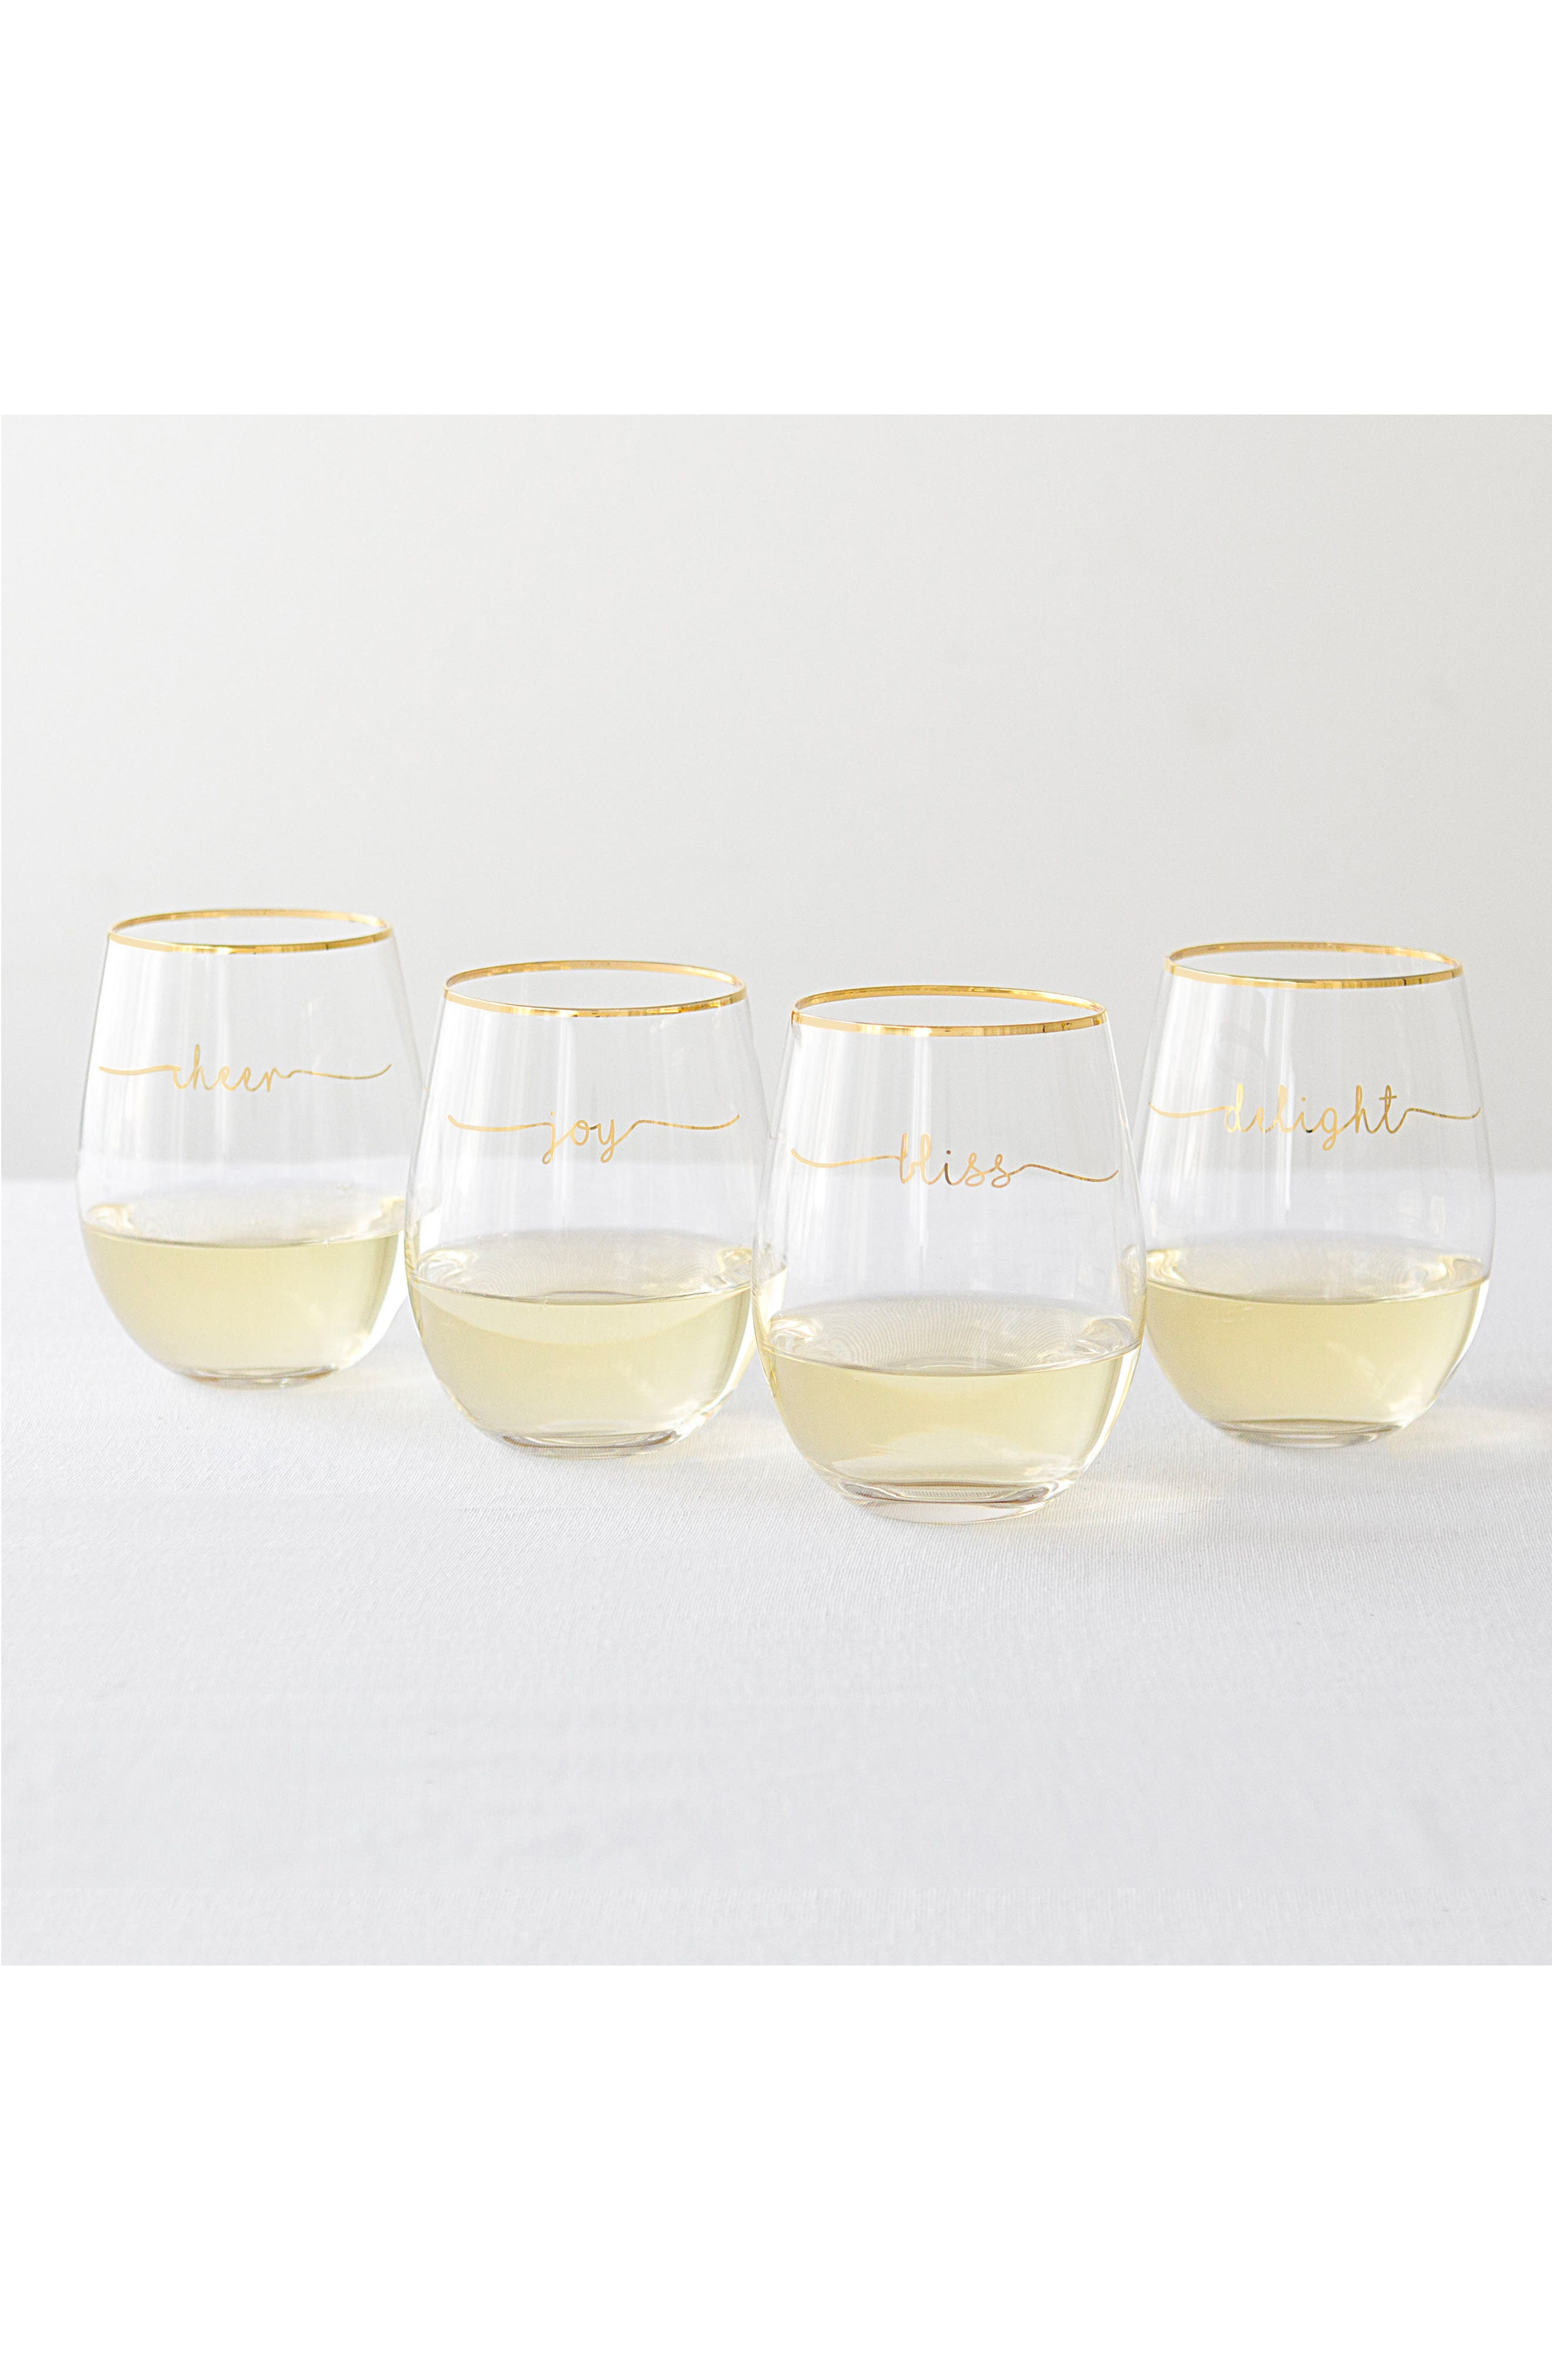 Bliss Set of 4 Stemless Wine Glasses,                         Main,                         color, Gold